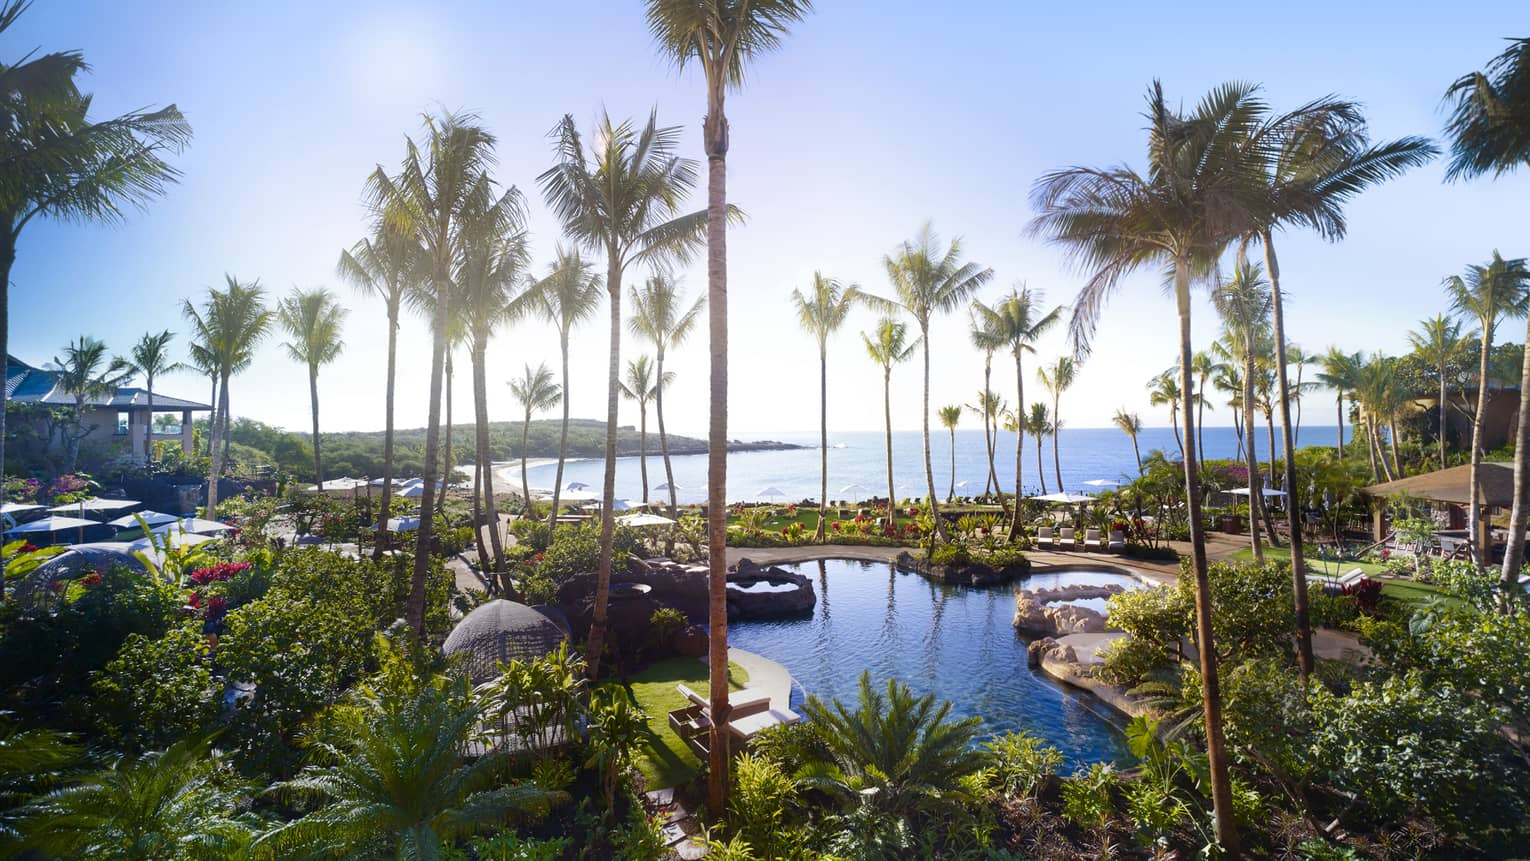 View over Four Seasons Resort Hawaii, Lanai outdoor swimming pools, palm trees by ocean